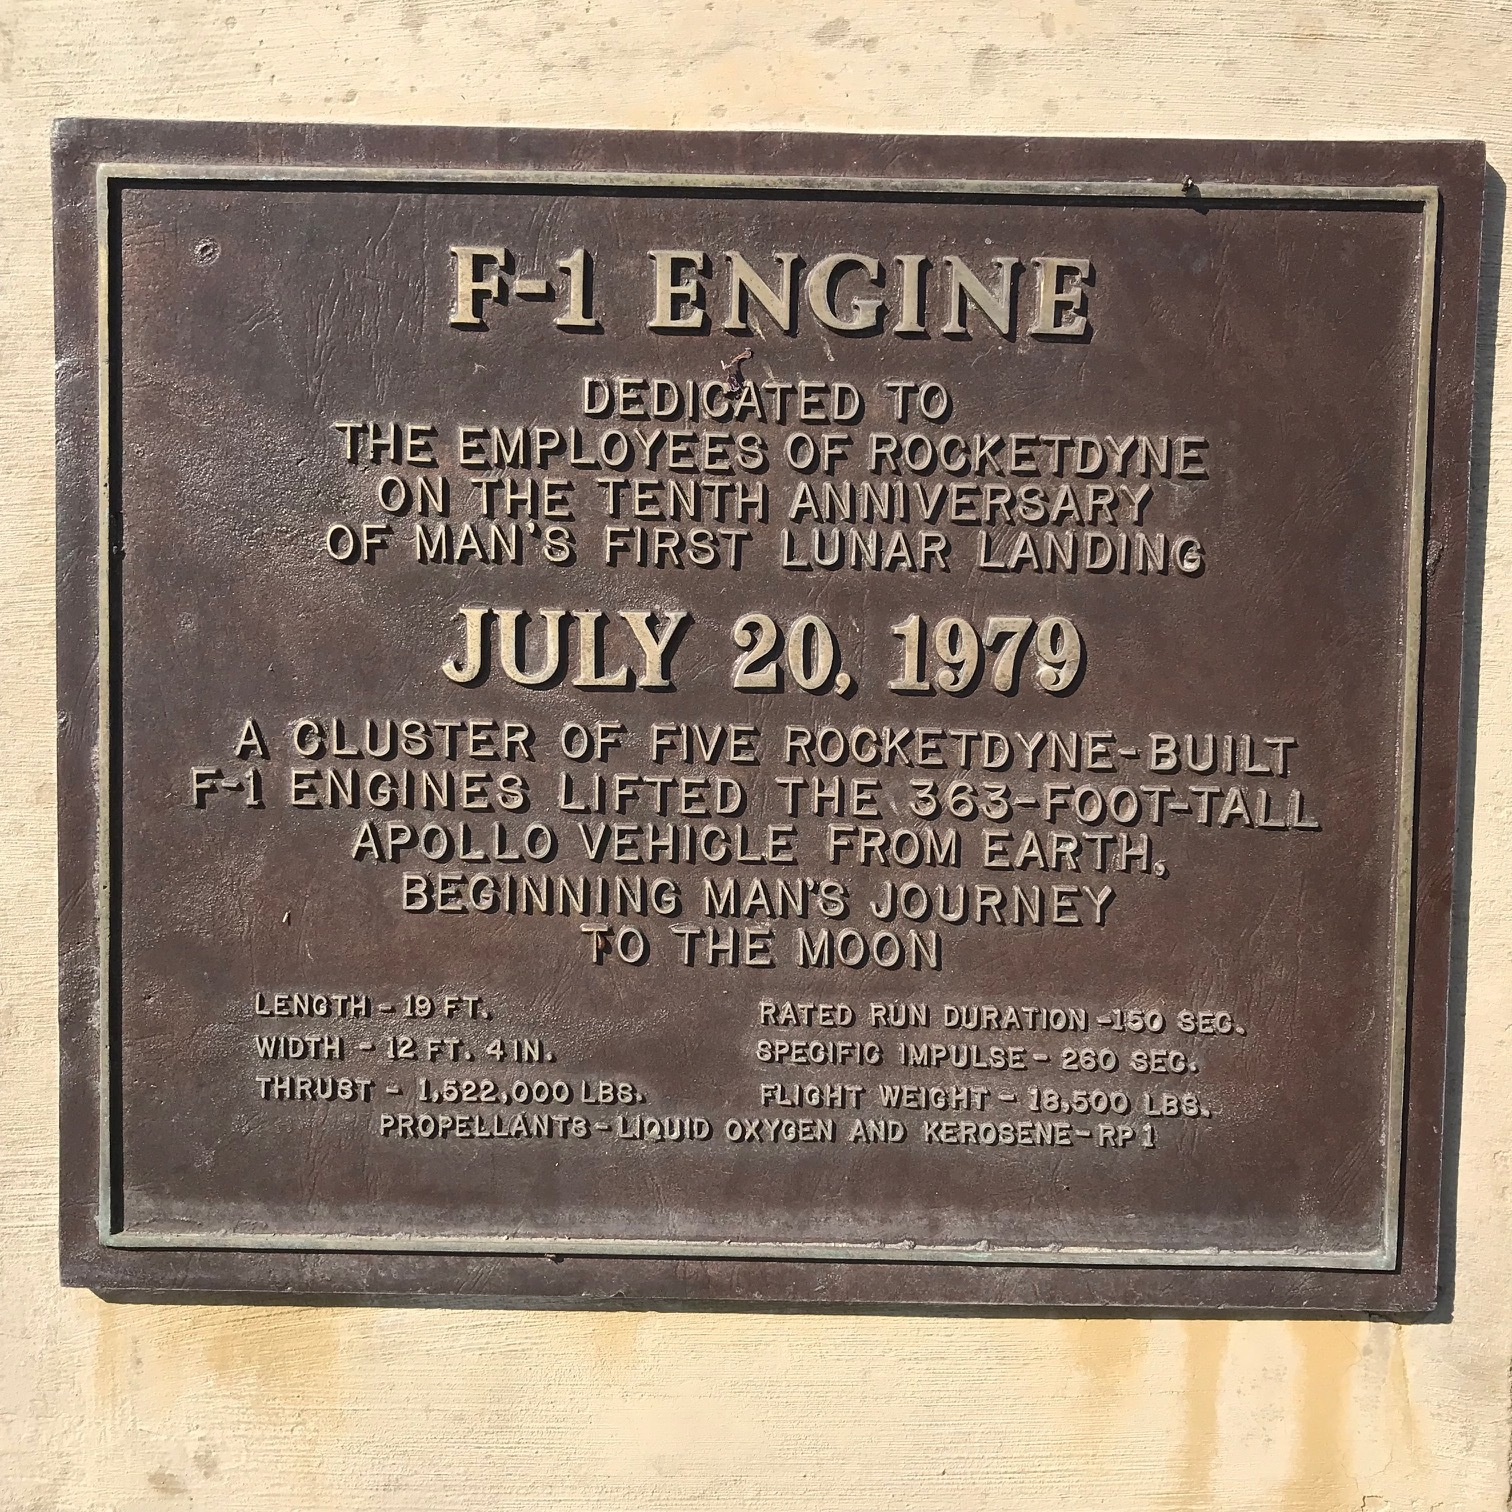 Bronze plaque at base of F-1 Engine.